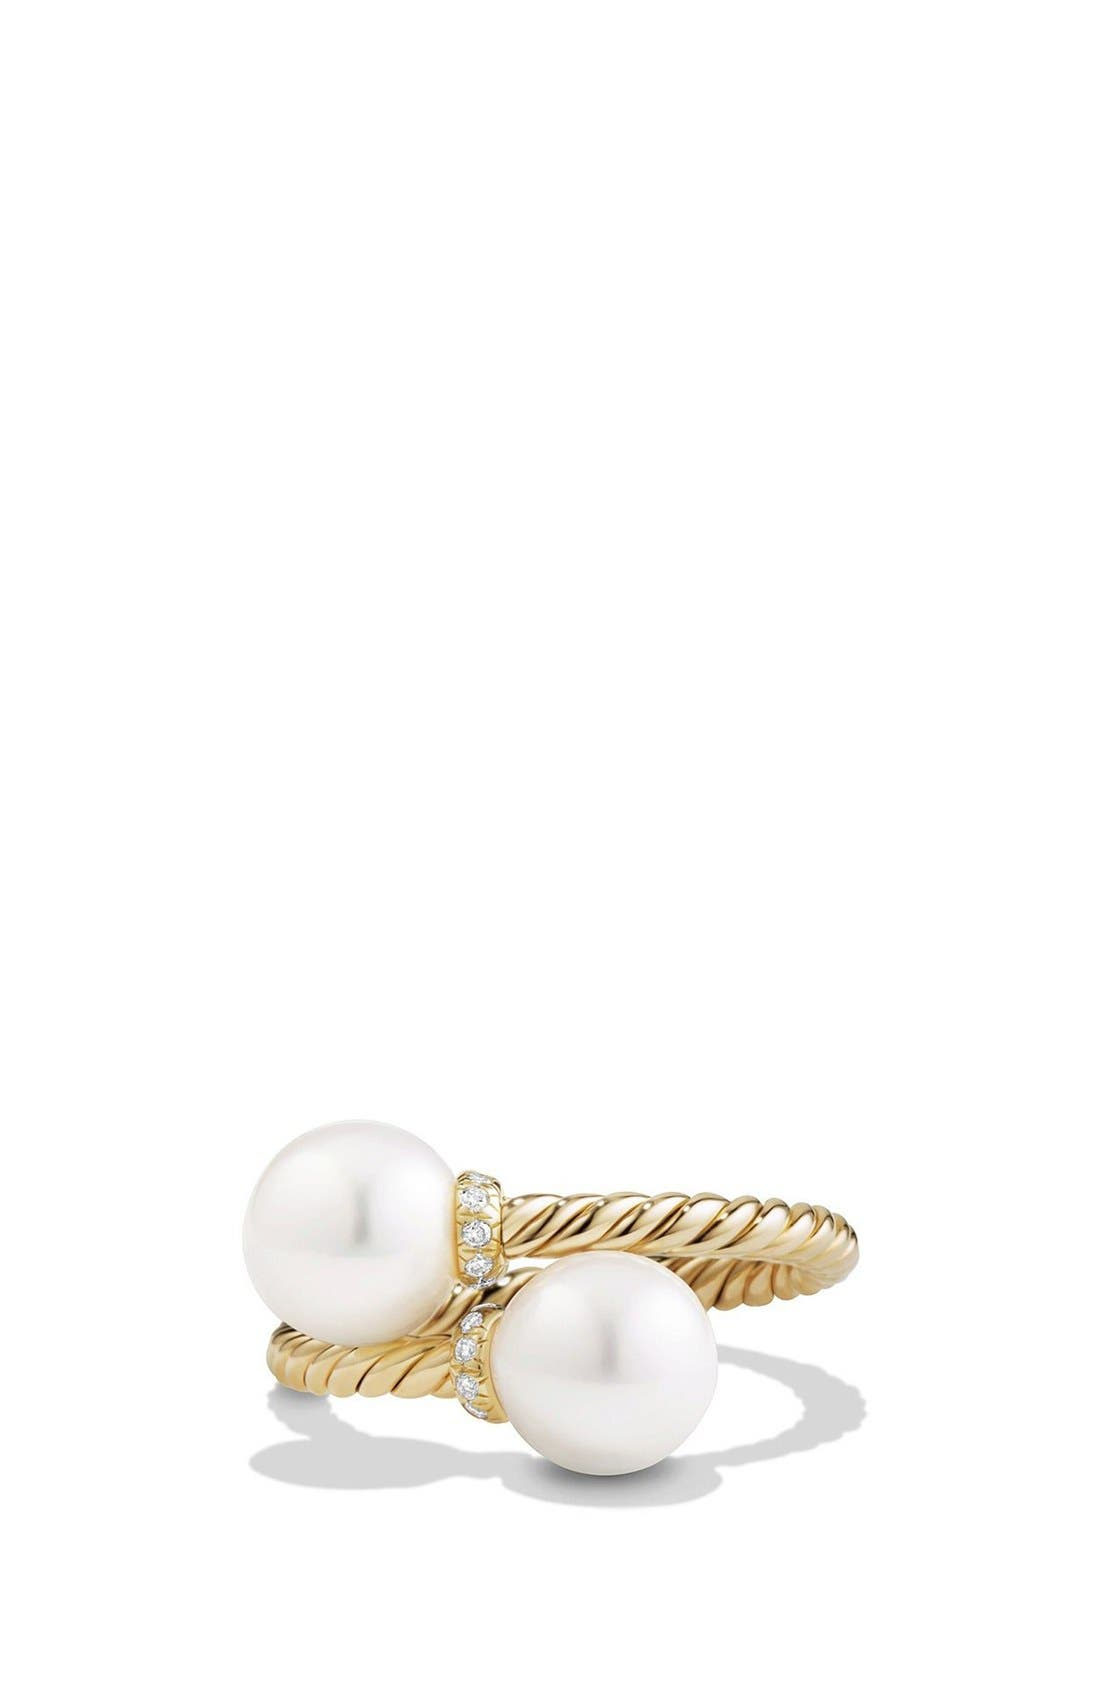 Alternate Image 1 Selected - David Yurman 'Solari' Bead Ring with Diamonds and Pearls in 18K Gold